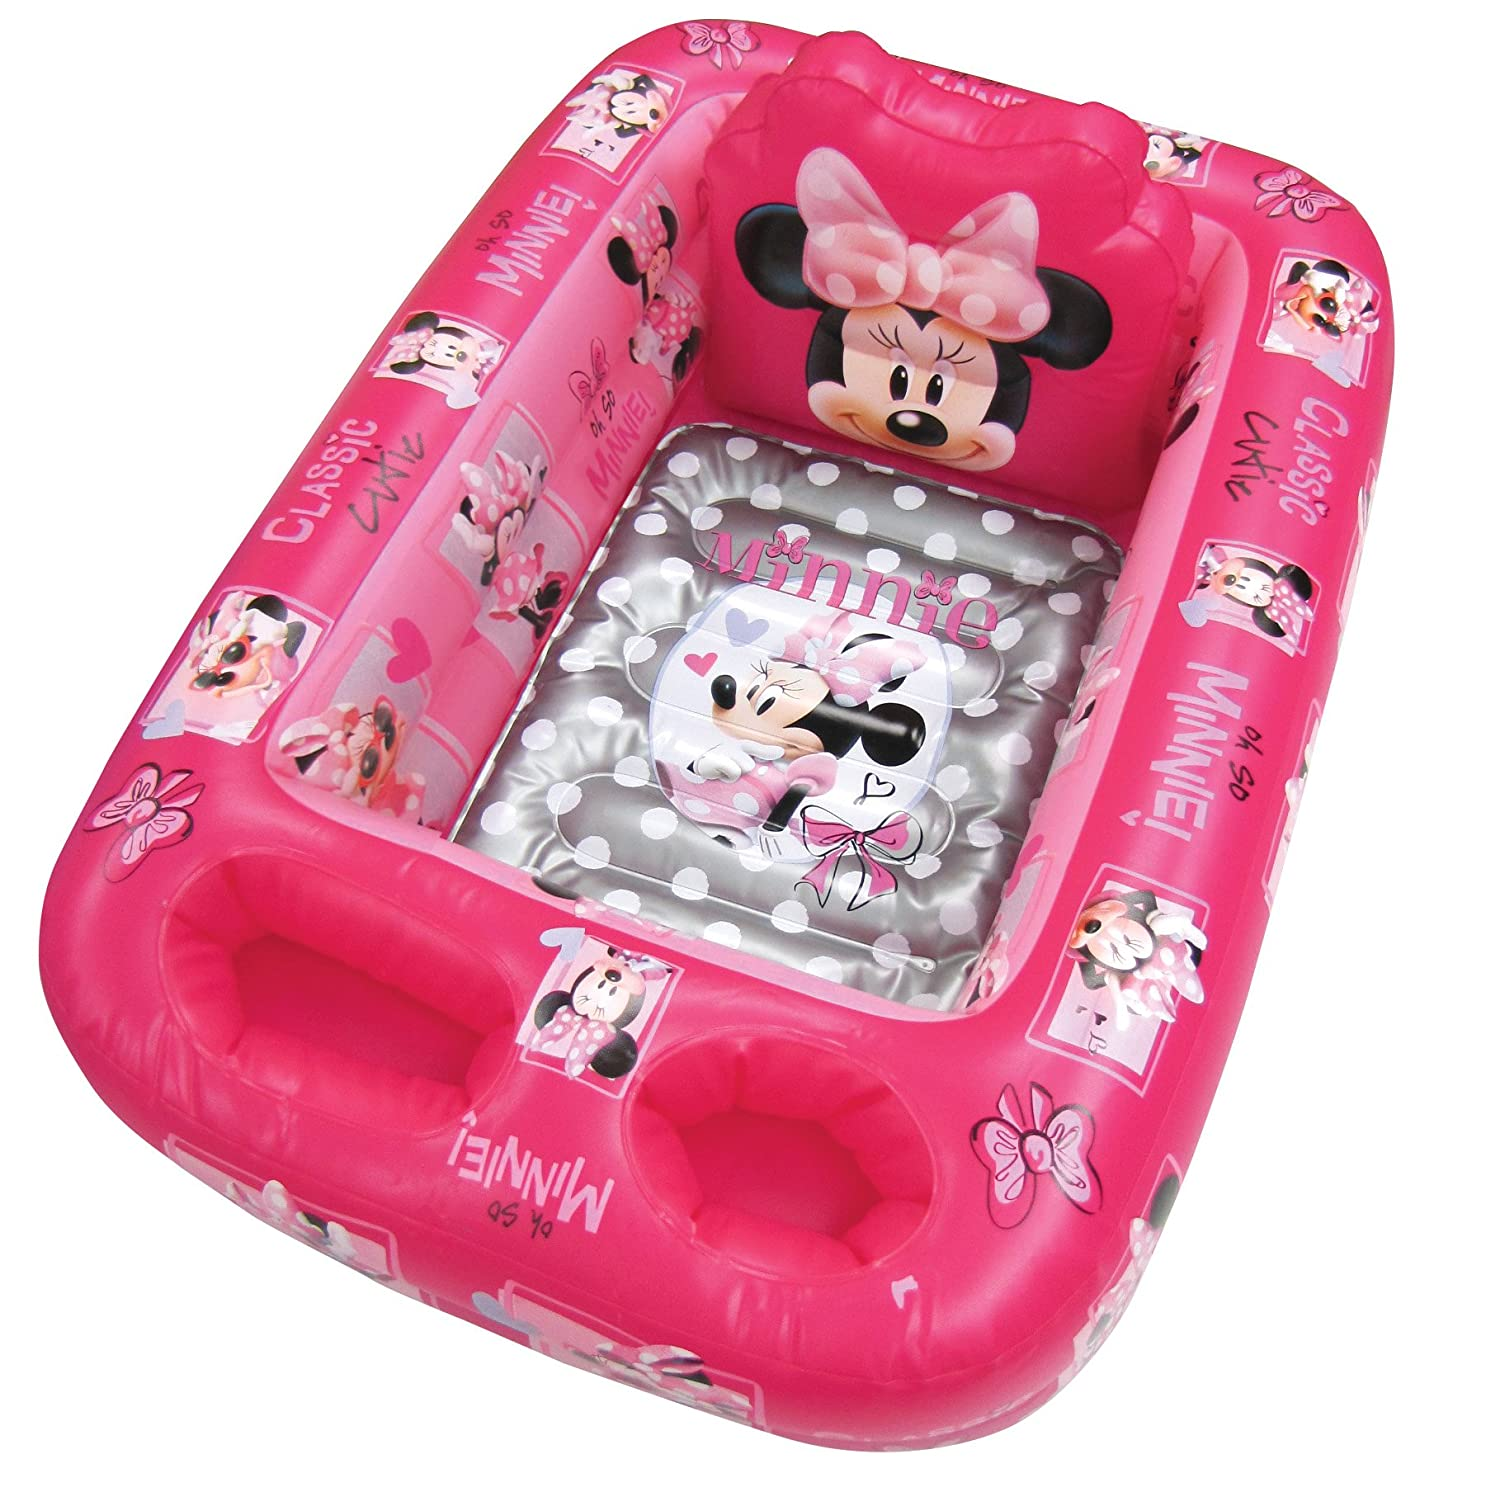 Disney Inflatable Bathtub, Princess 69116